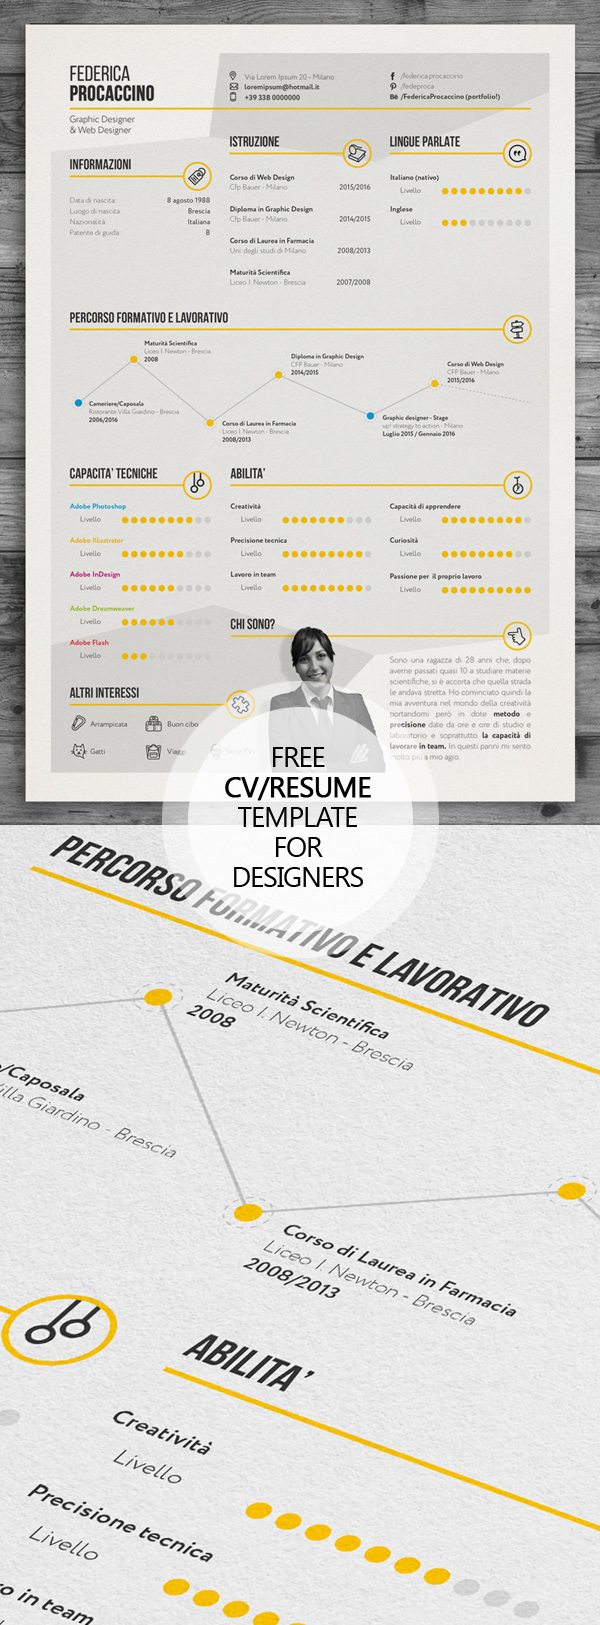 Free Psd CvResume And Cover Letter Templates  Freebies